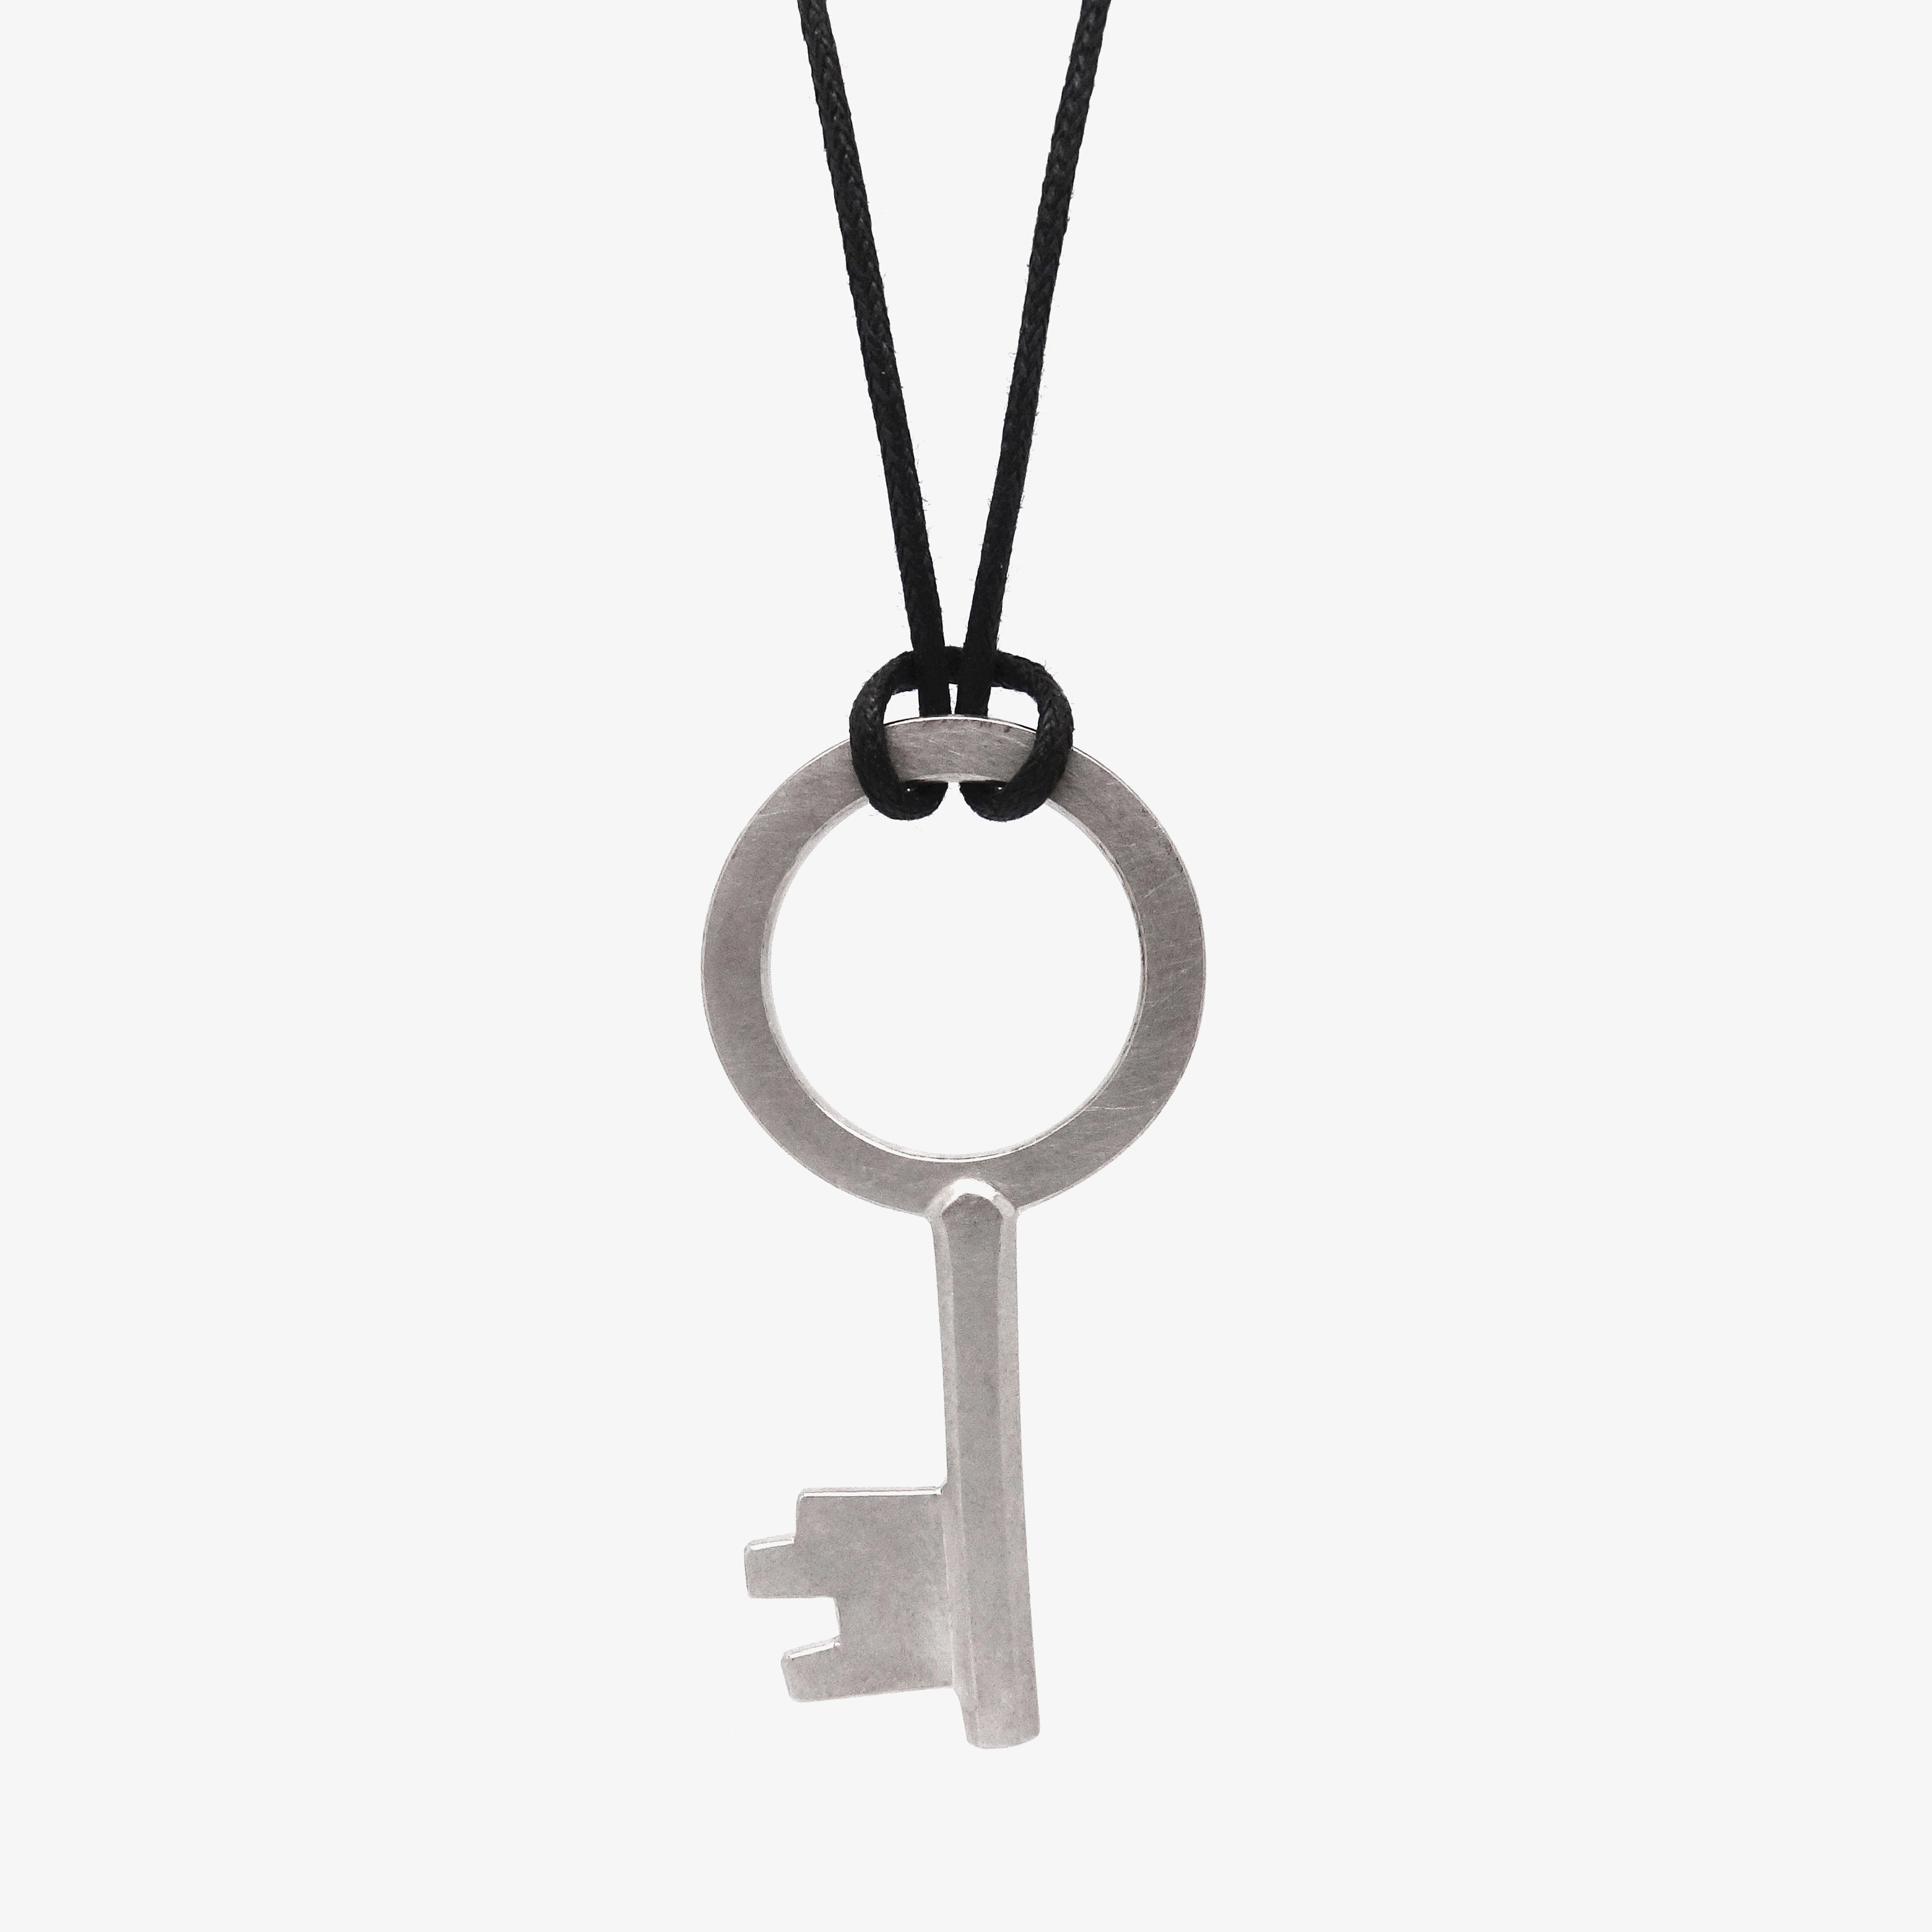 MEDIUM SILVER KEY PENDANT